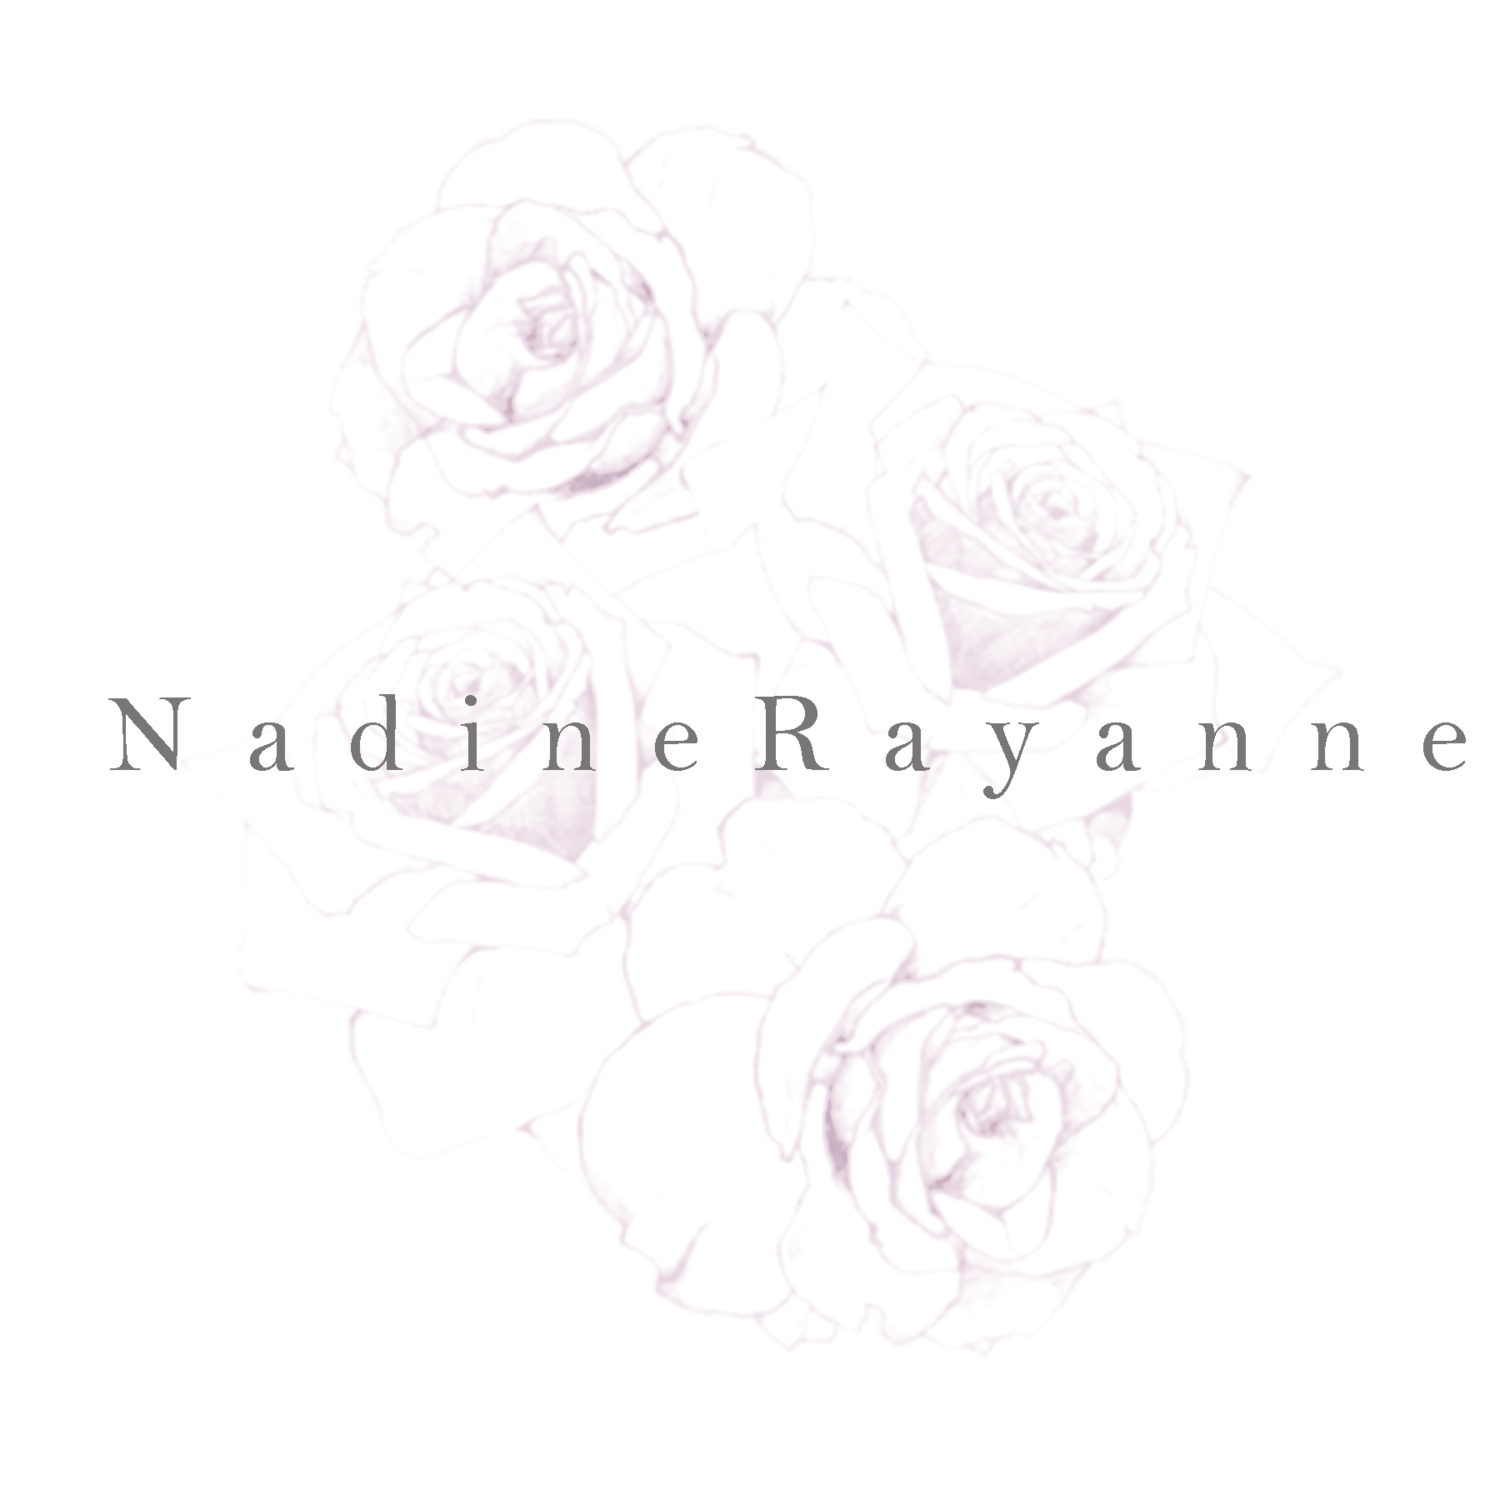 Nadine Rayanne Photography